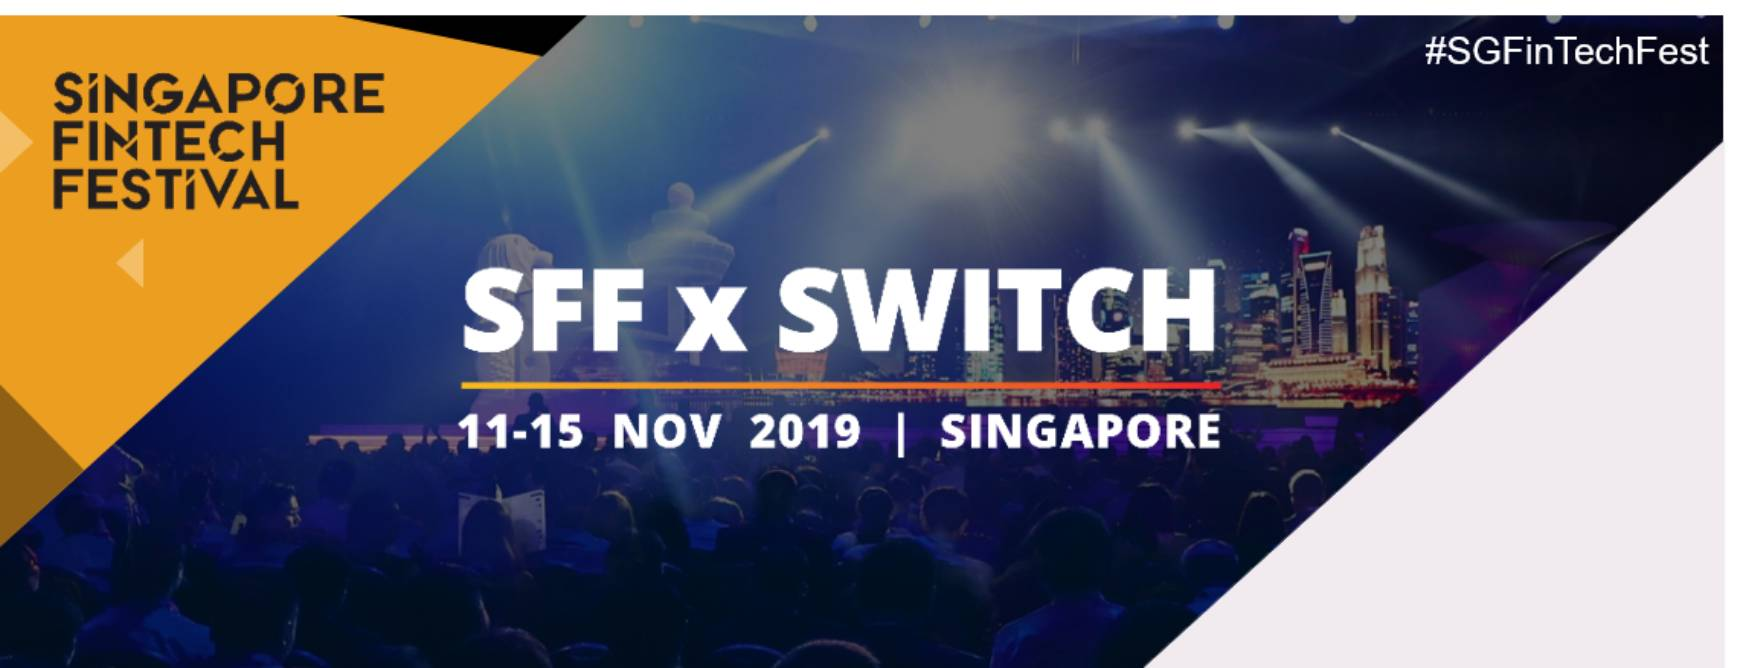 Experian returns to Singapore Fintech Festival for the 3rd time in 2019!